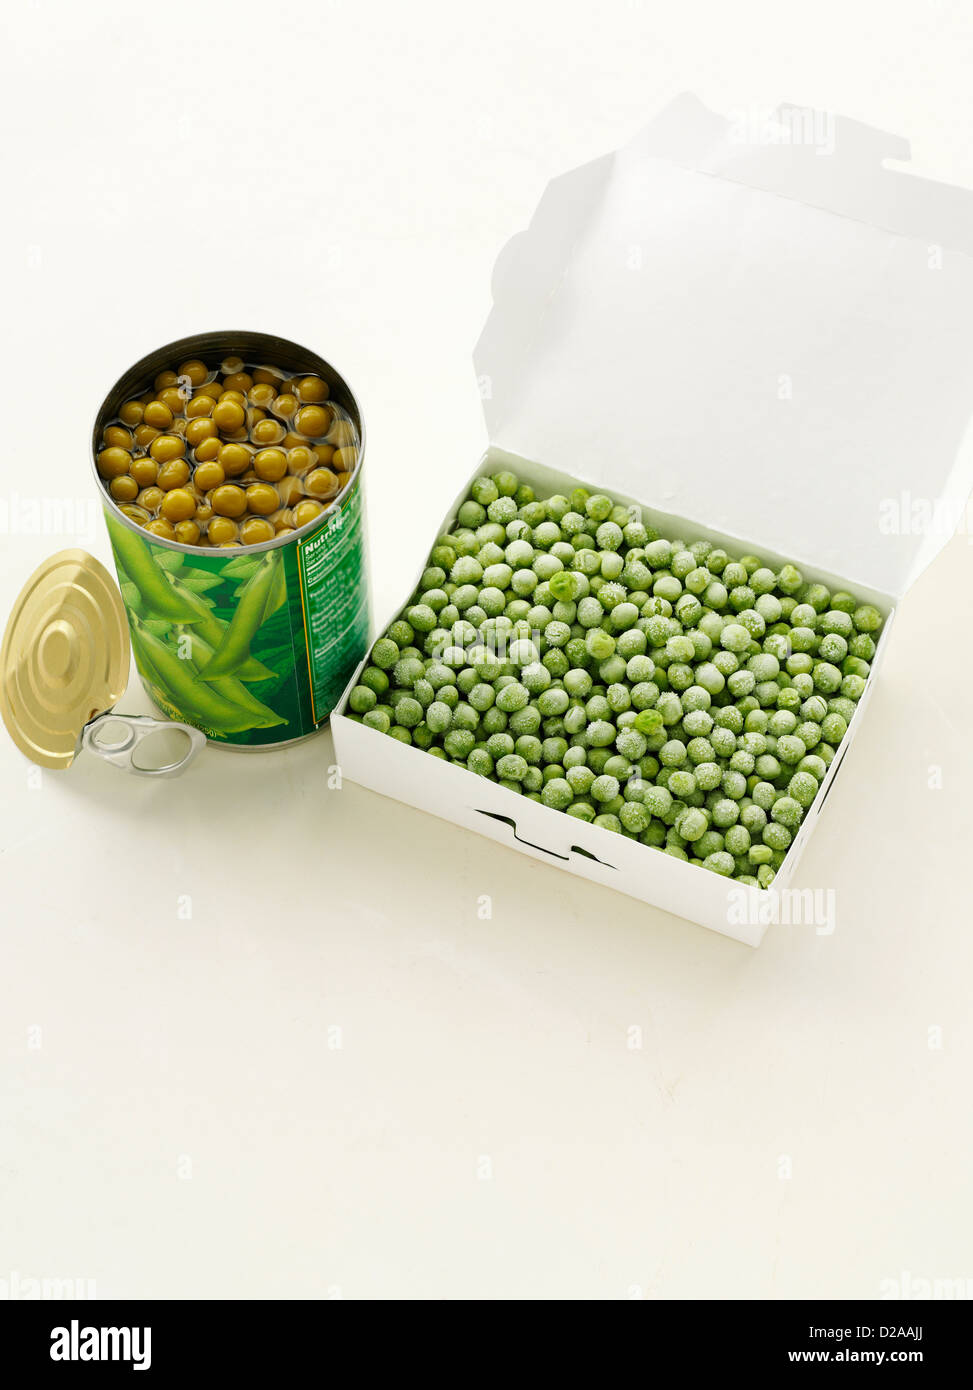 Canned peas with frozen peas - Stock Image